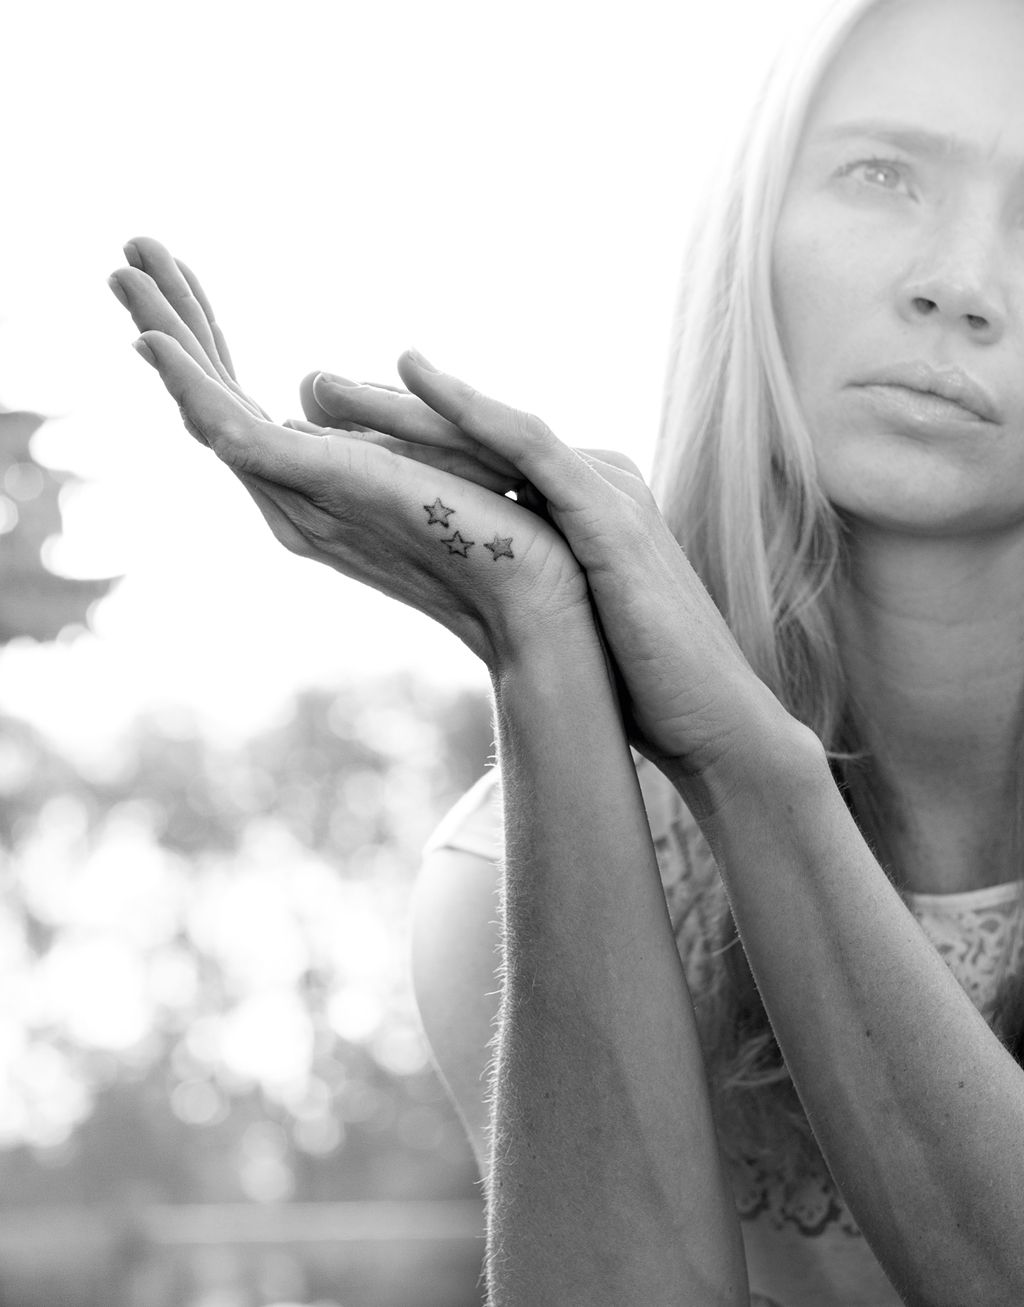 Hands of supermodel Jodie Kidd